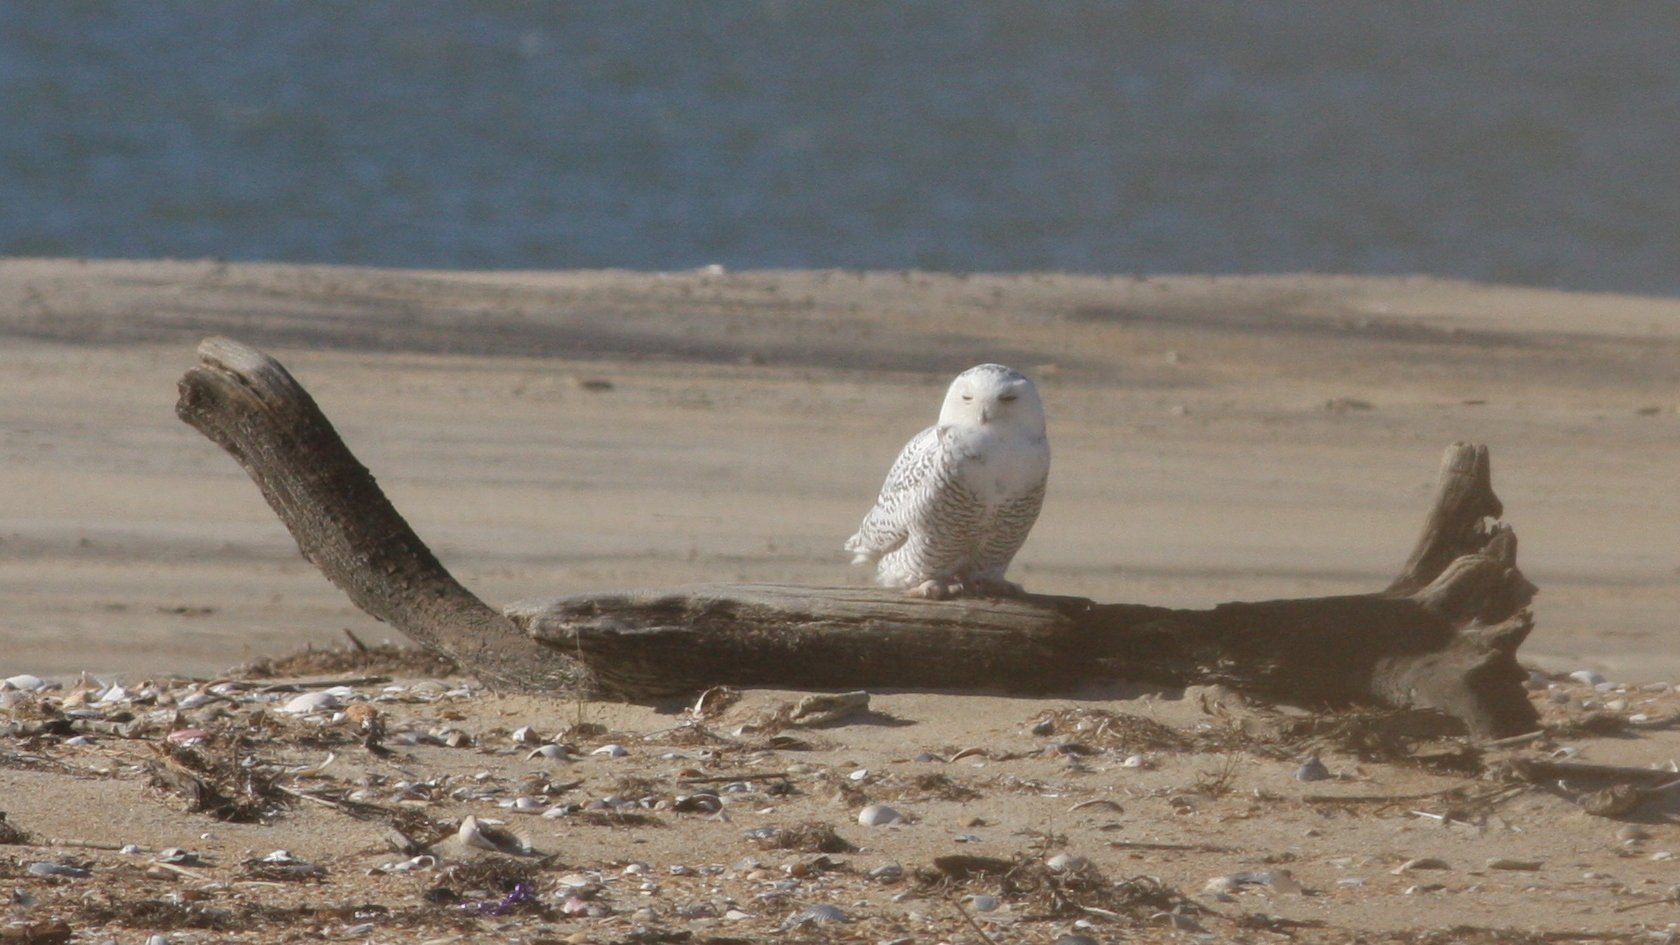 Snowy Owl in North Carolina by Nathan Swick